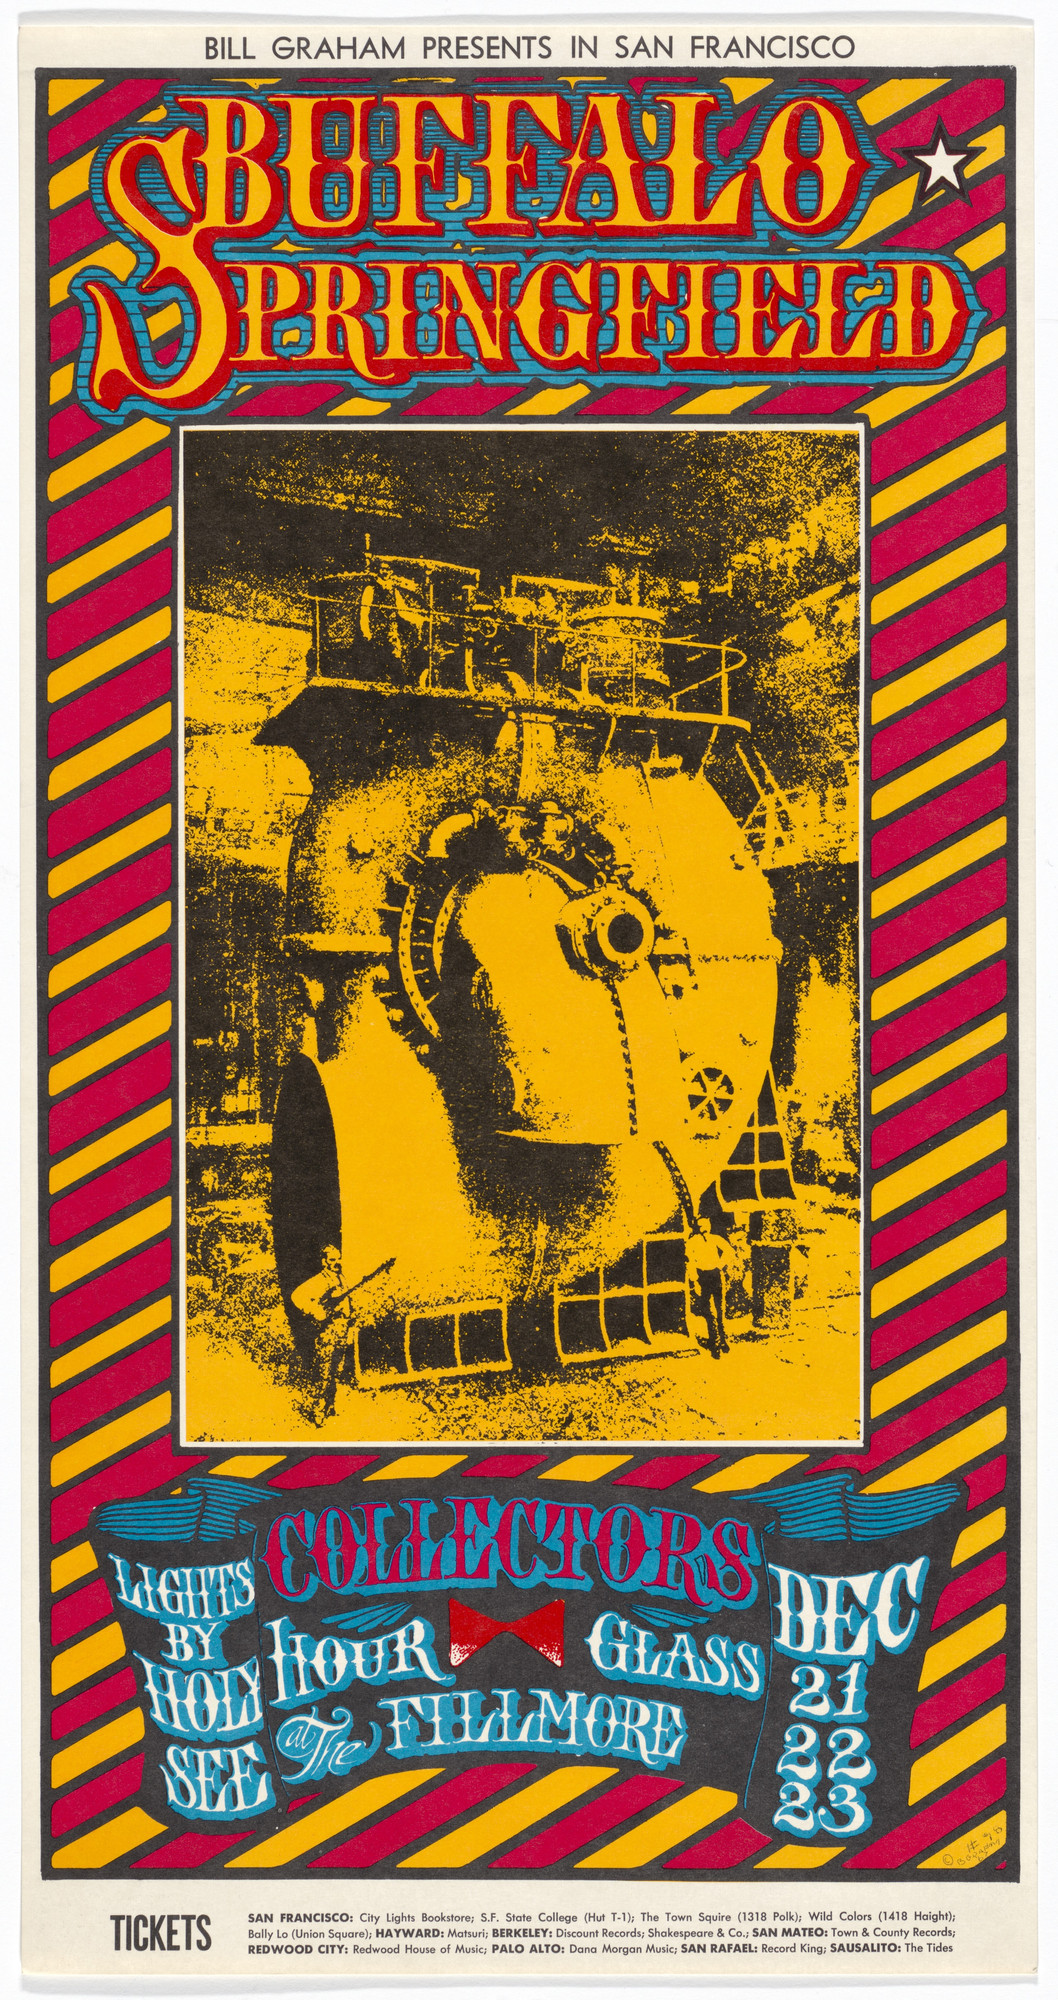 Stanley Mouse, Alton Kelley. Buffalo Springfield, Collectors, Hour Glass. 1967